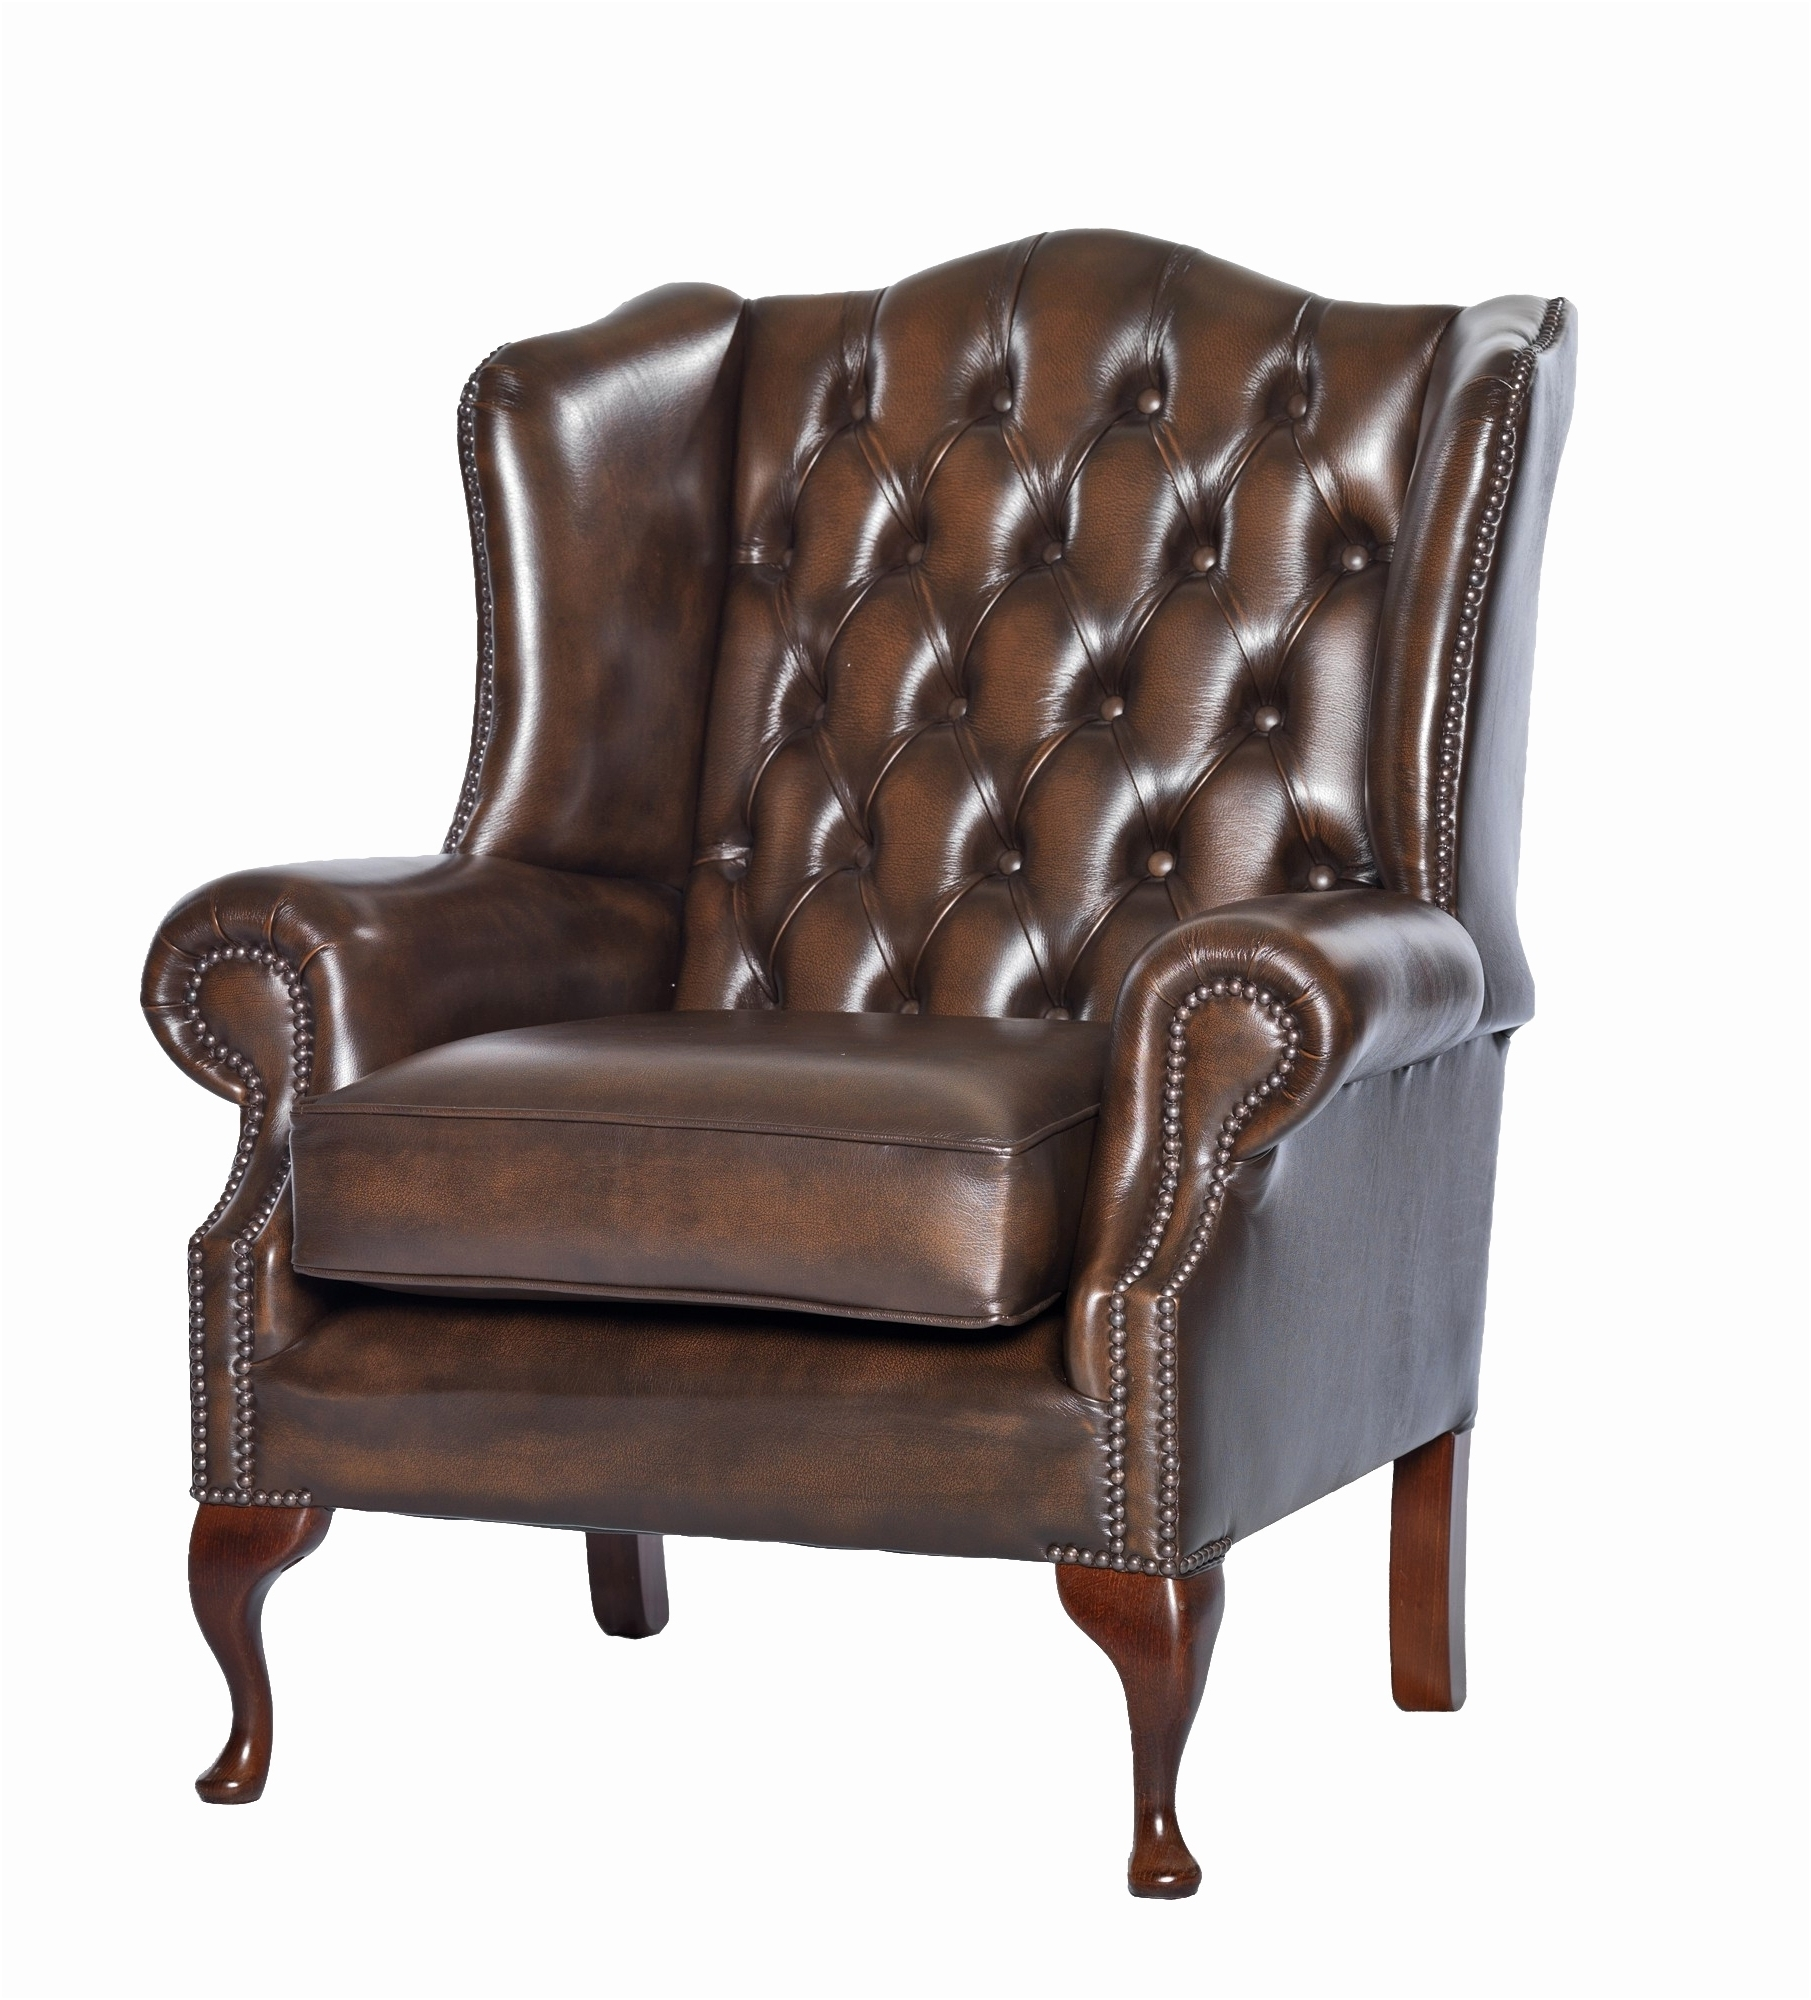 Elegant Used Chesterfield Sofa Luxury – Intuisiblog Intended For Trendy Chesterfield Sofas And Chairs (View 5 of 15)